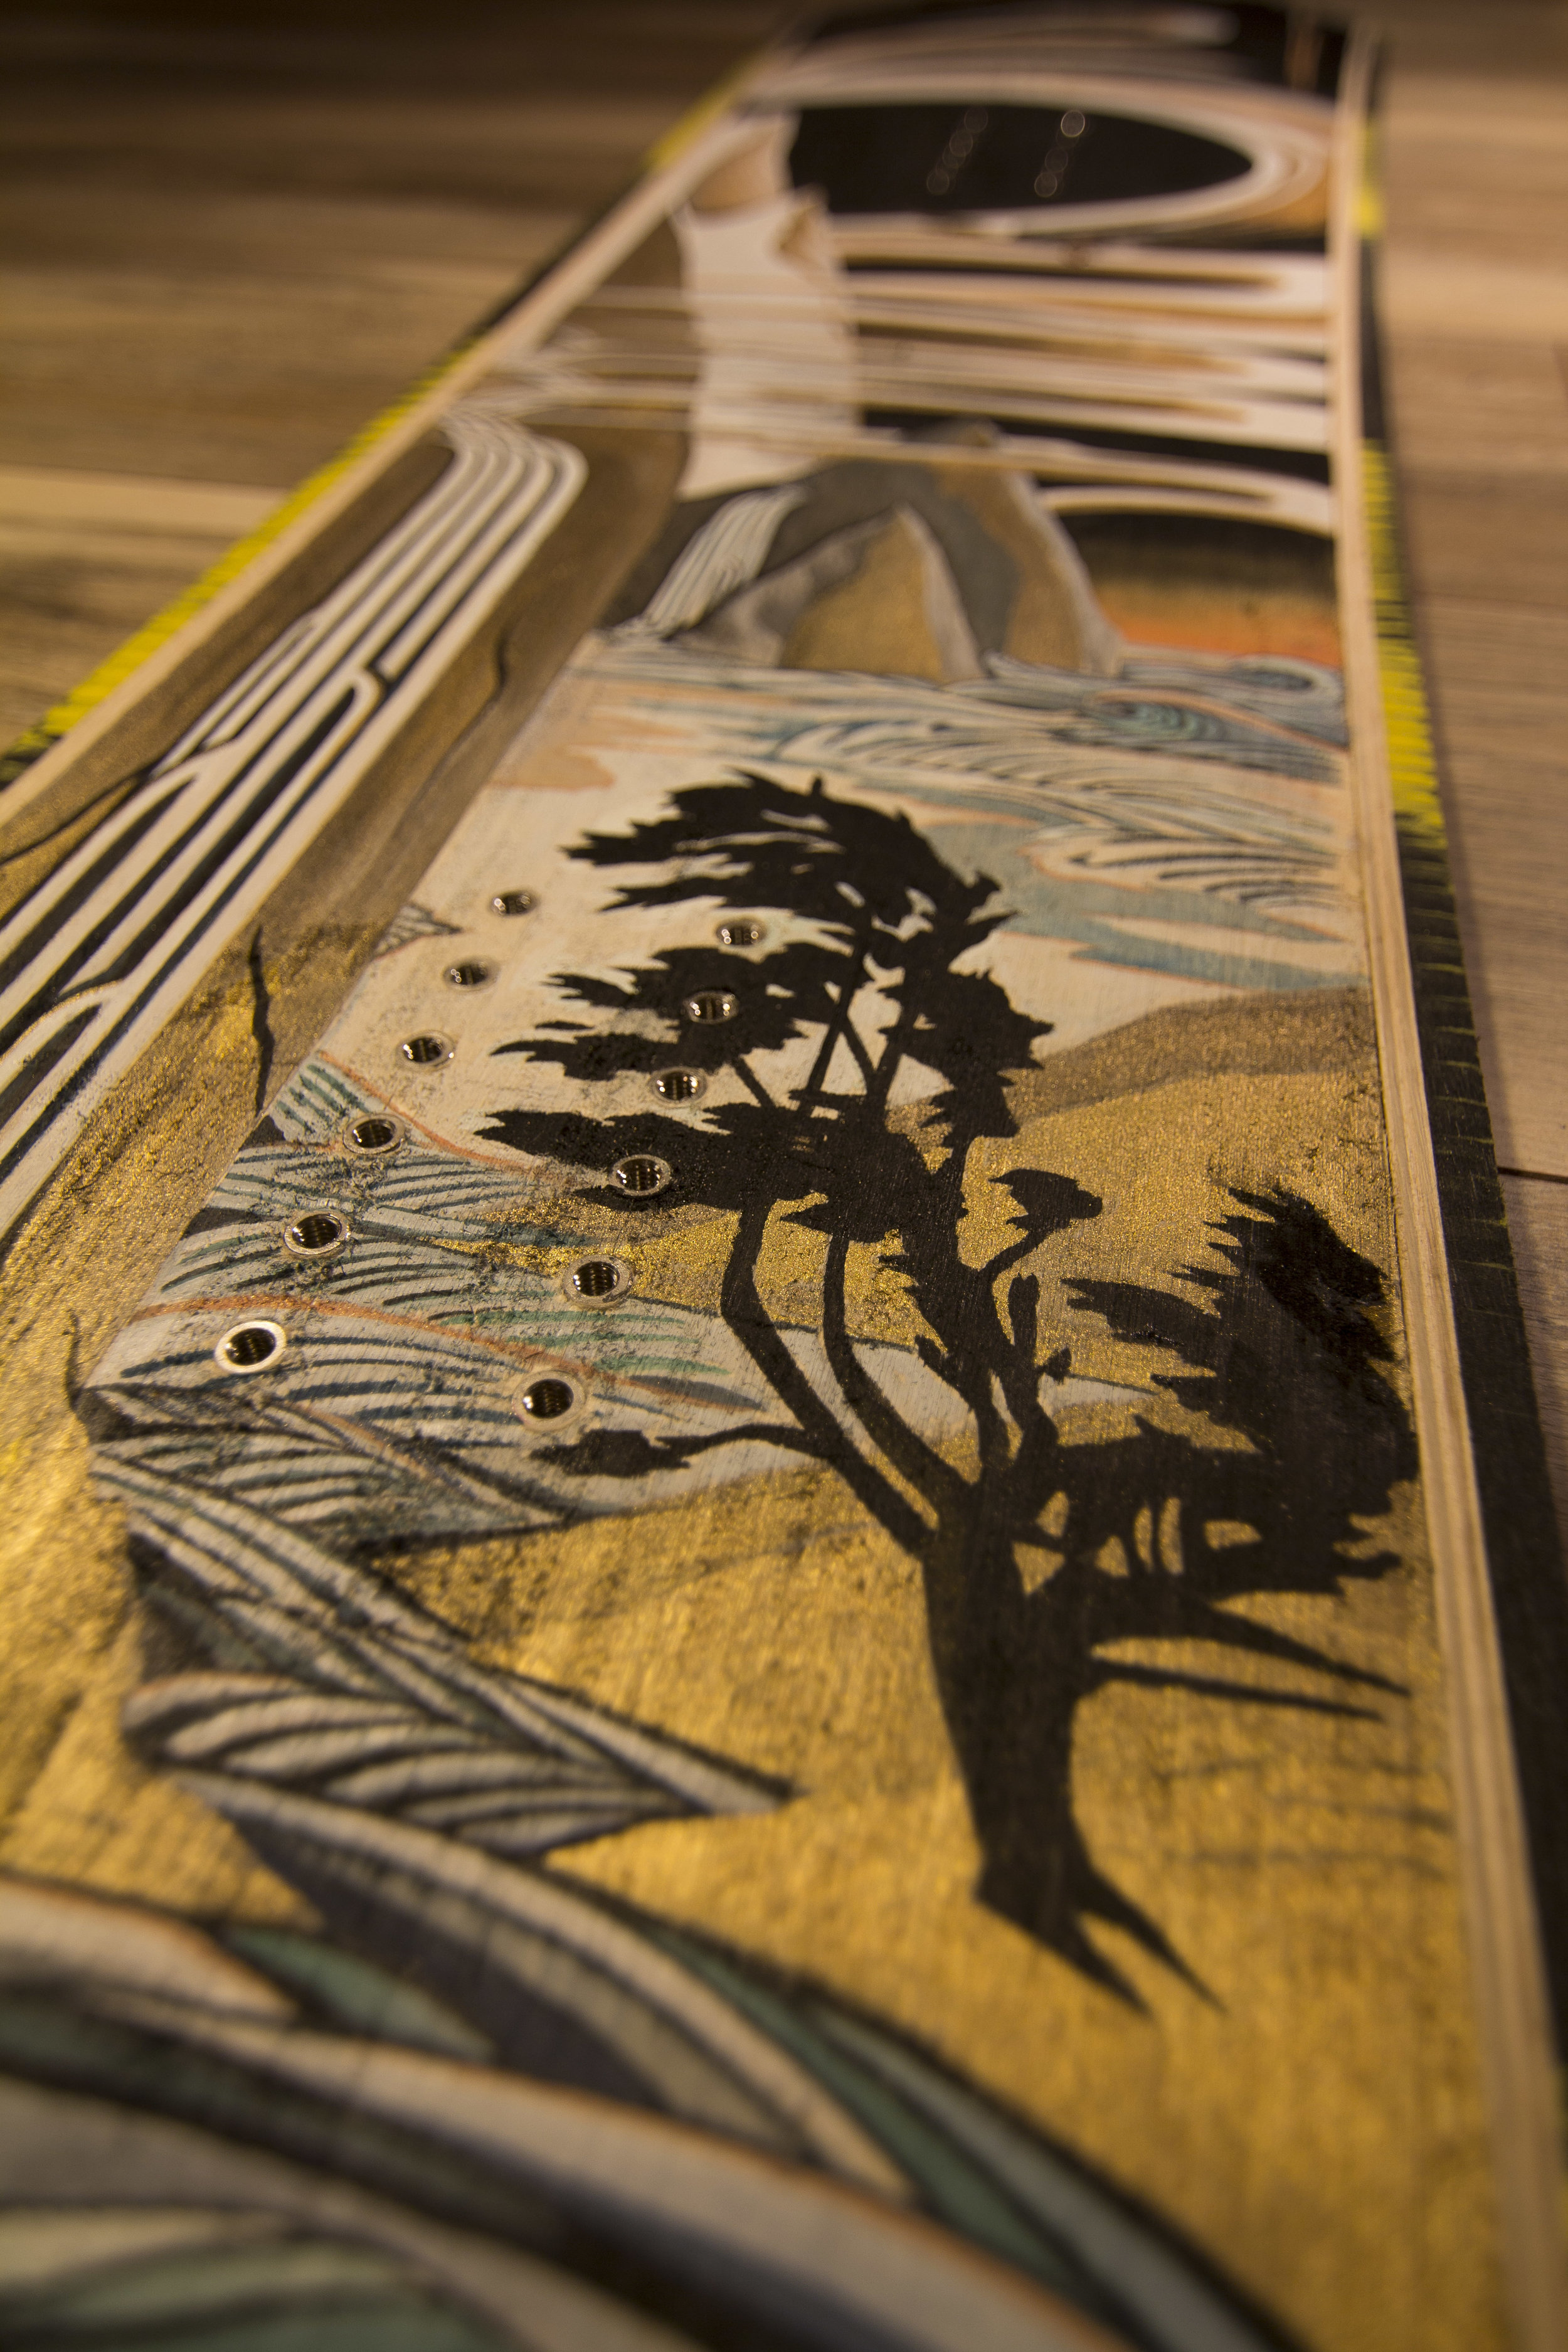 The Cycle, Acrylic & Resin on reclaimed wood core from Mervin Manufacturing